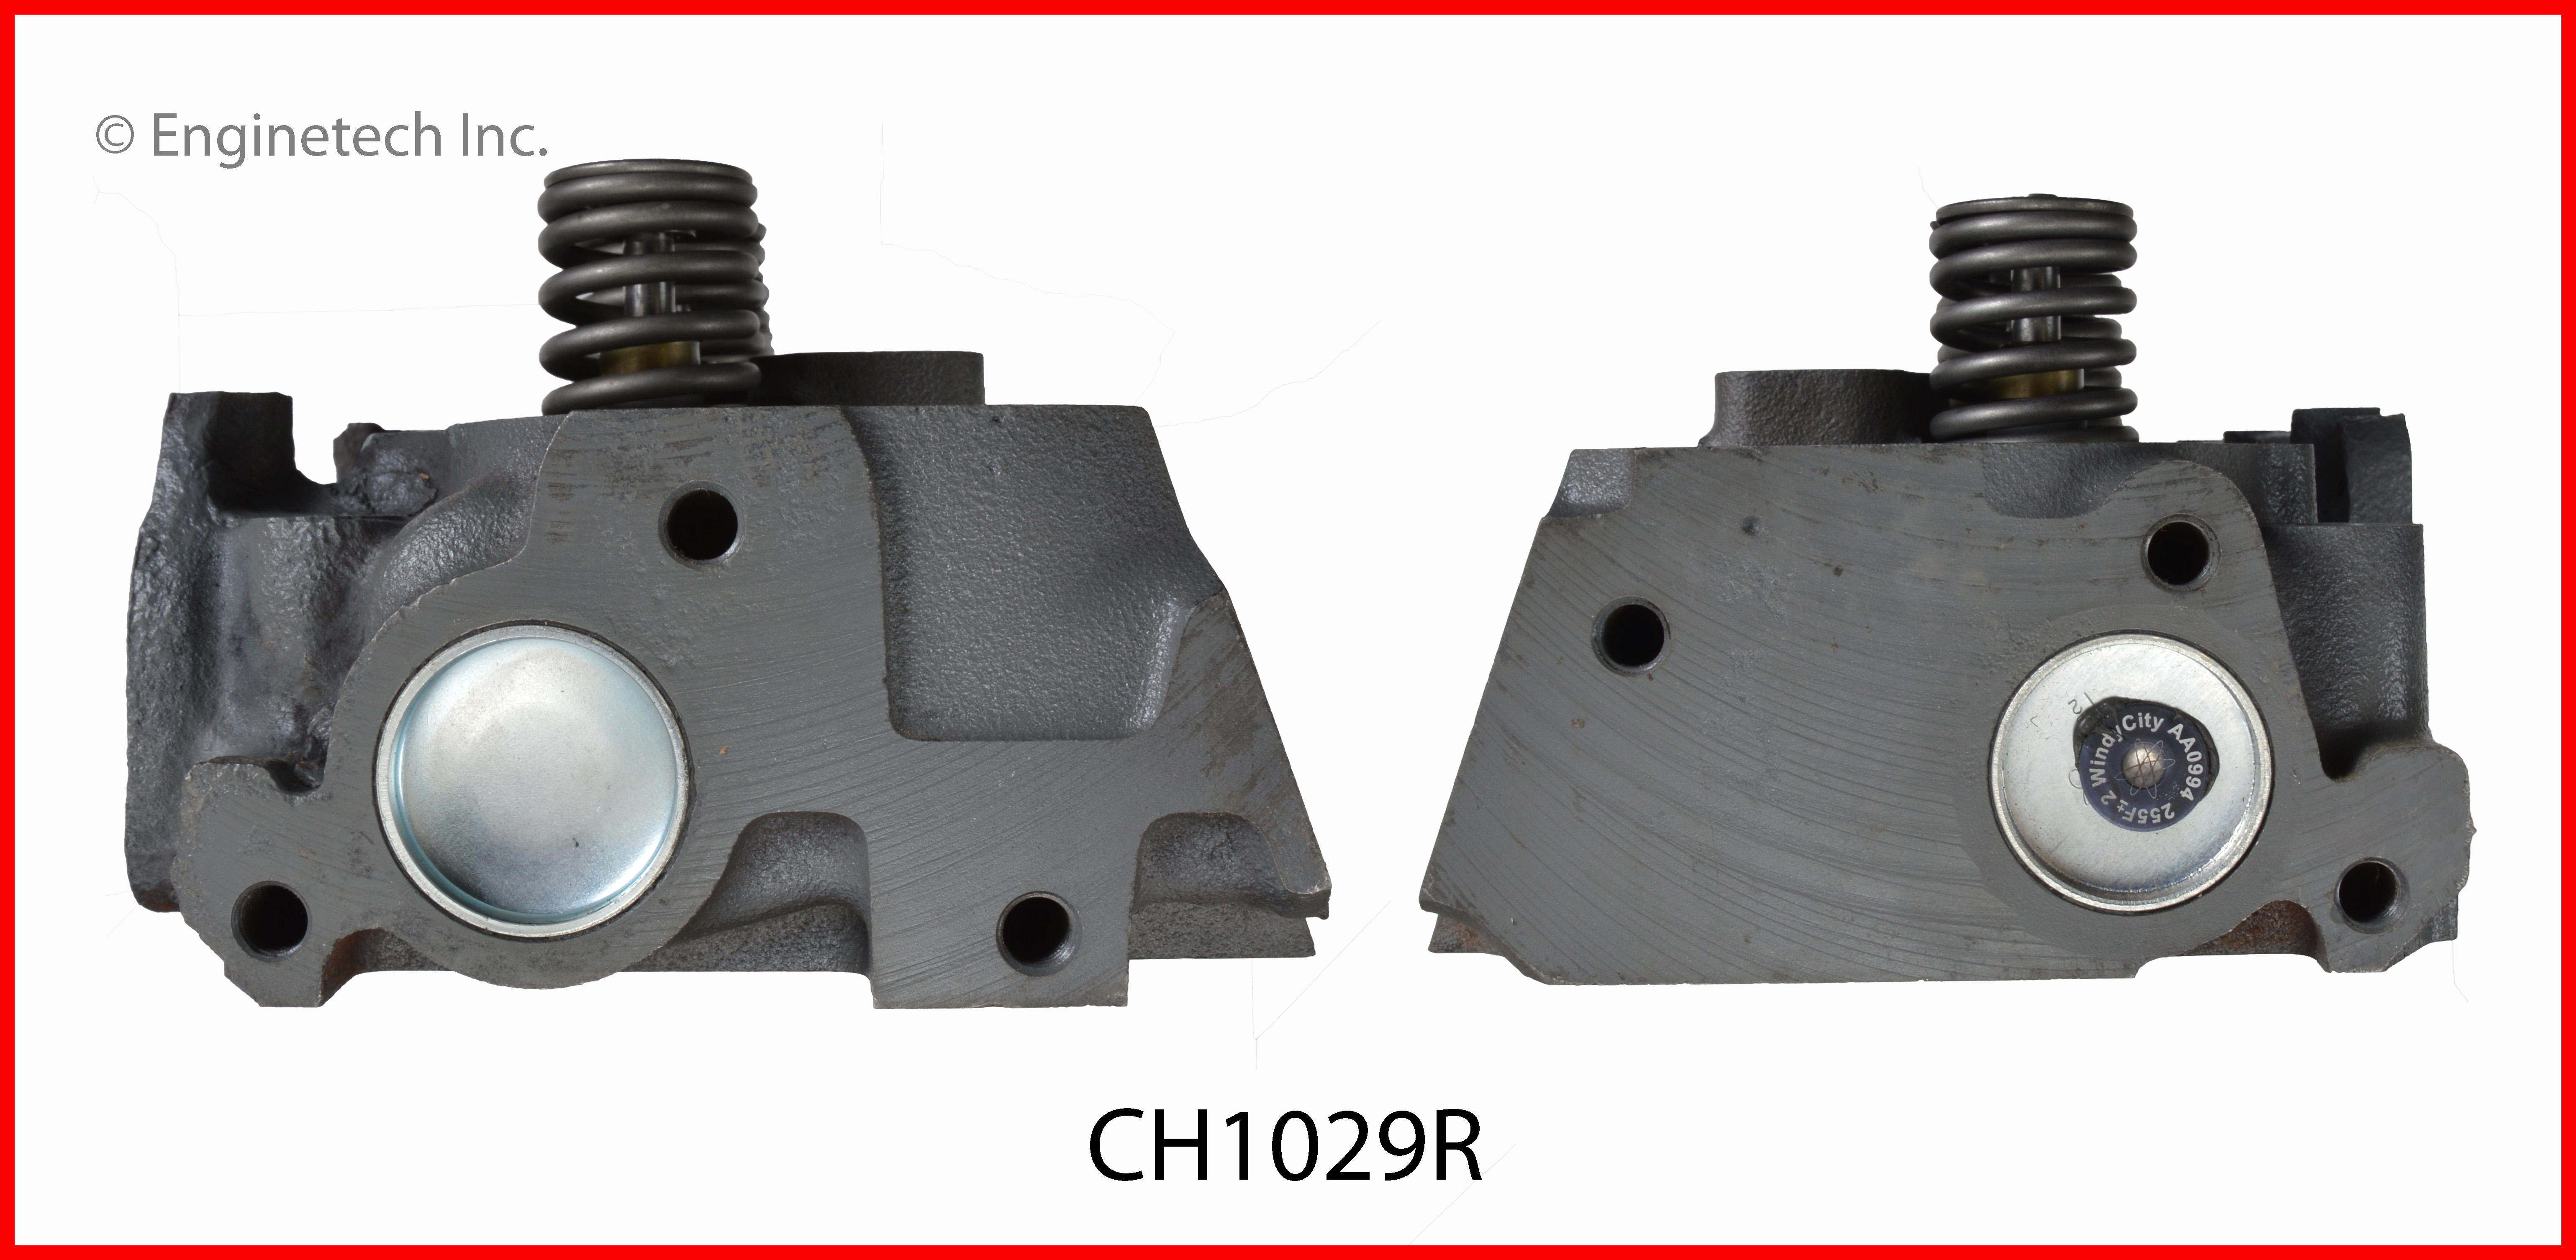 CH1029R Cylinder Head - Complete Enginetech